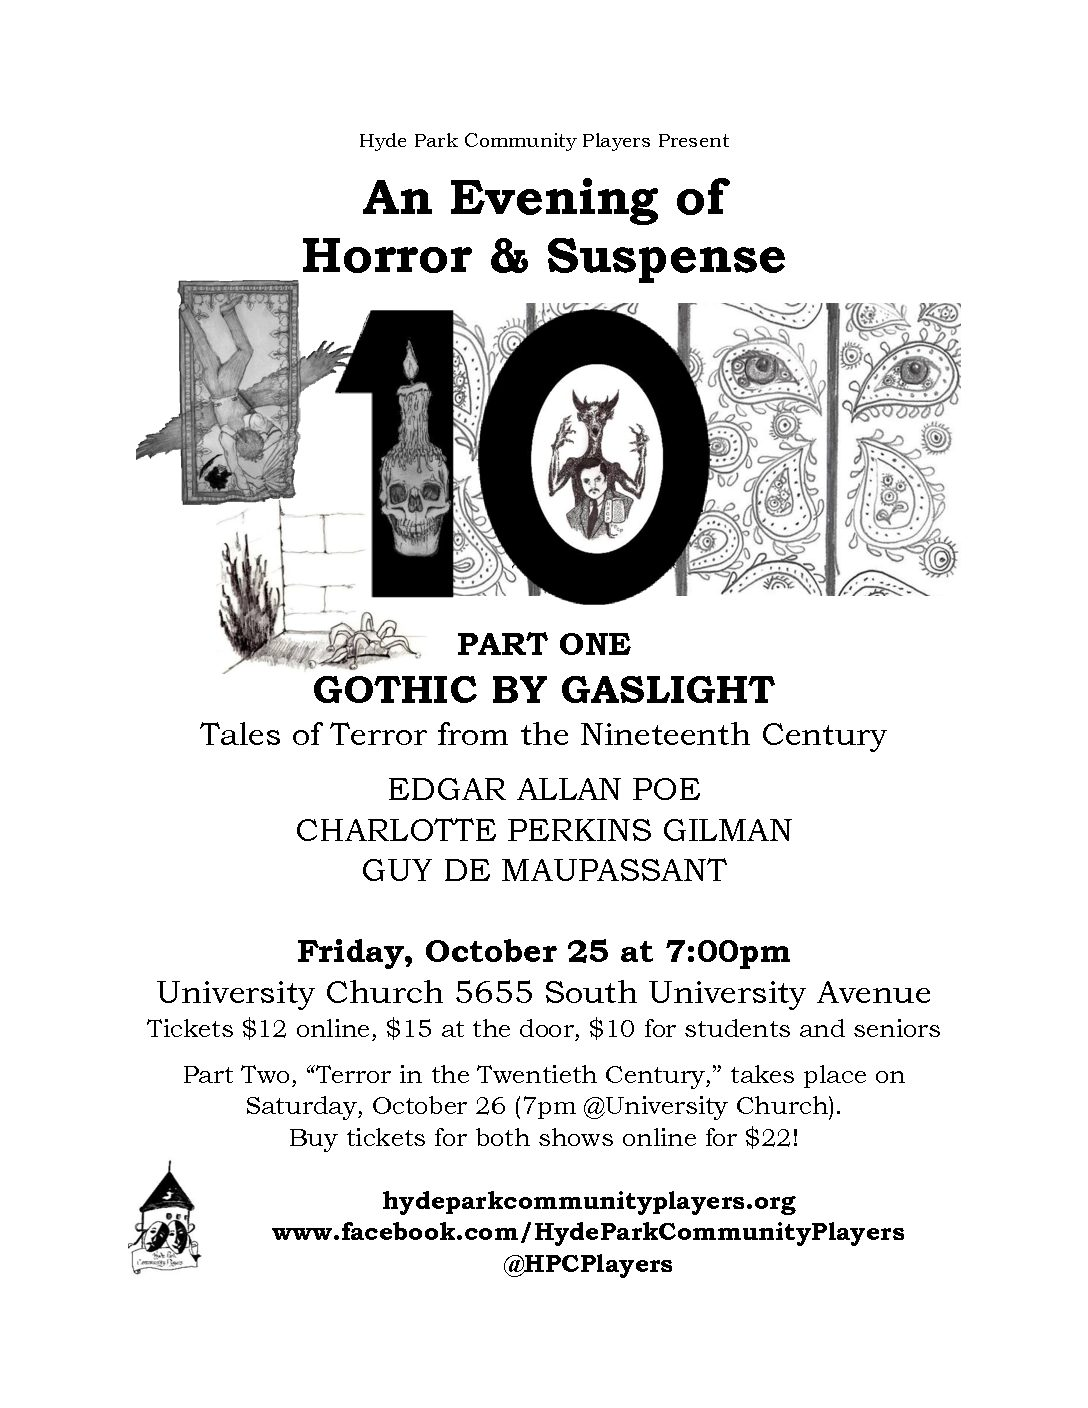 An Evening of Horror & Suspense, Part One: GOTHIC BY GASLIGHT